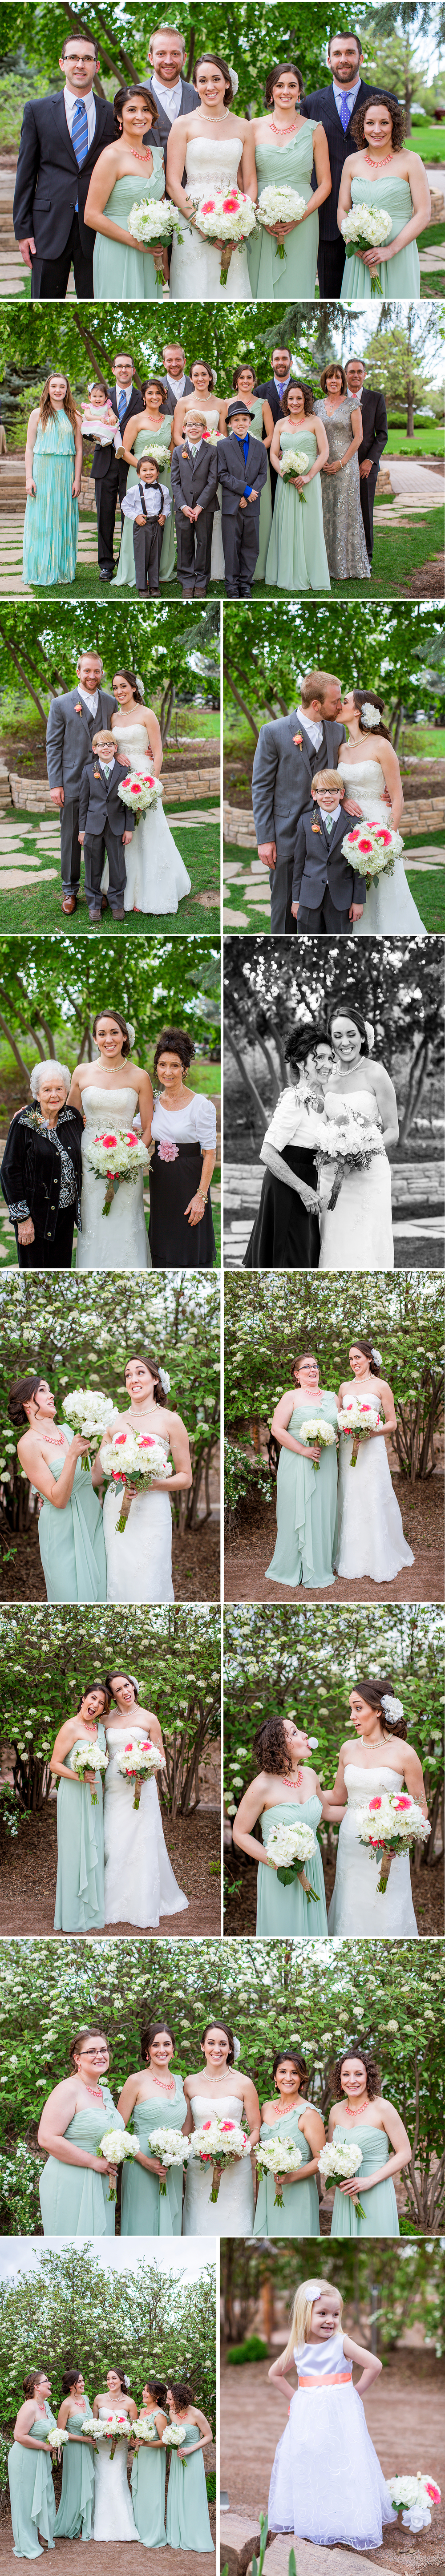 6_Beautiful Spring Wedding in Denver.jpg